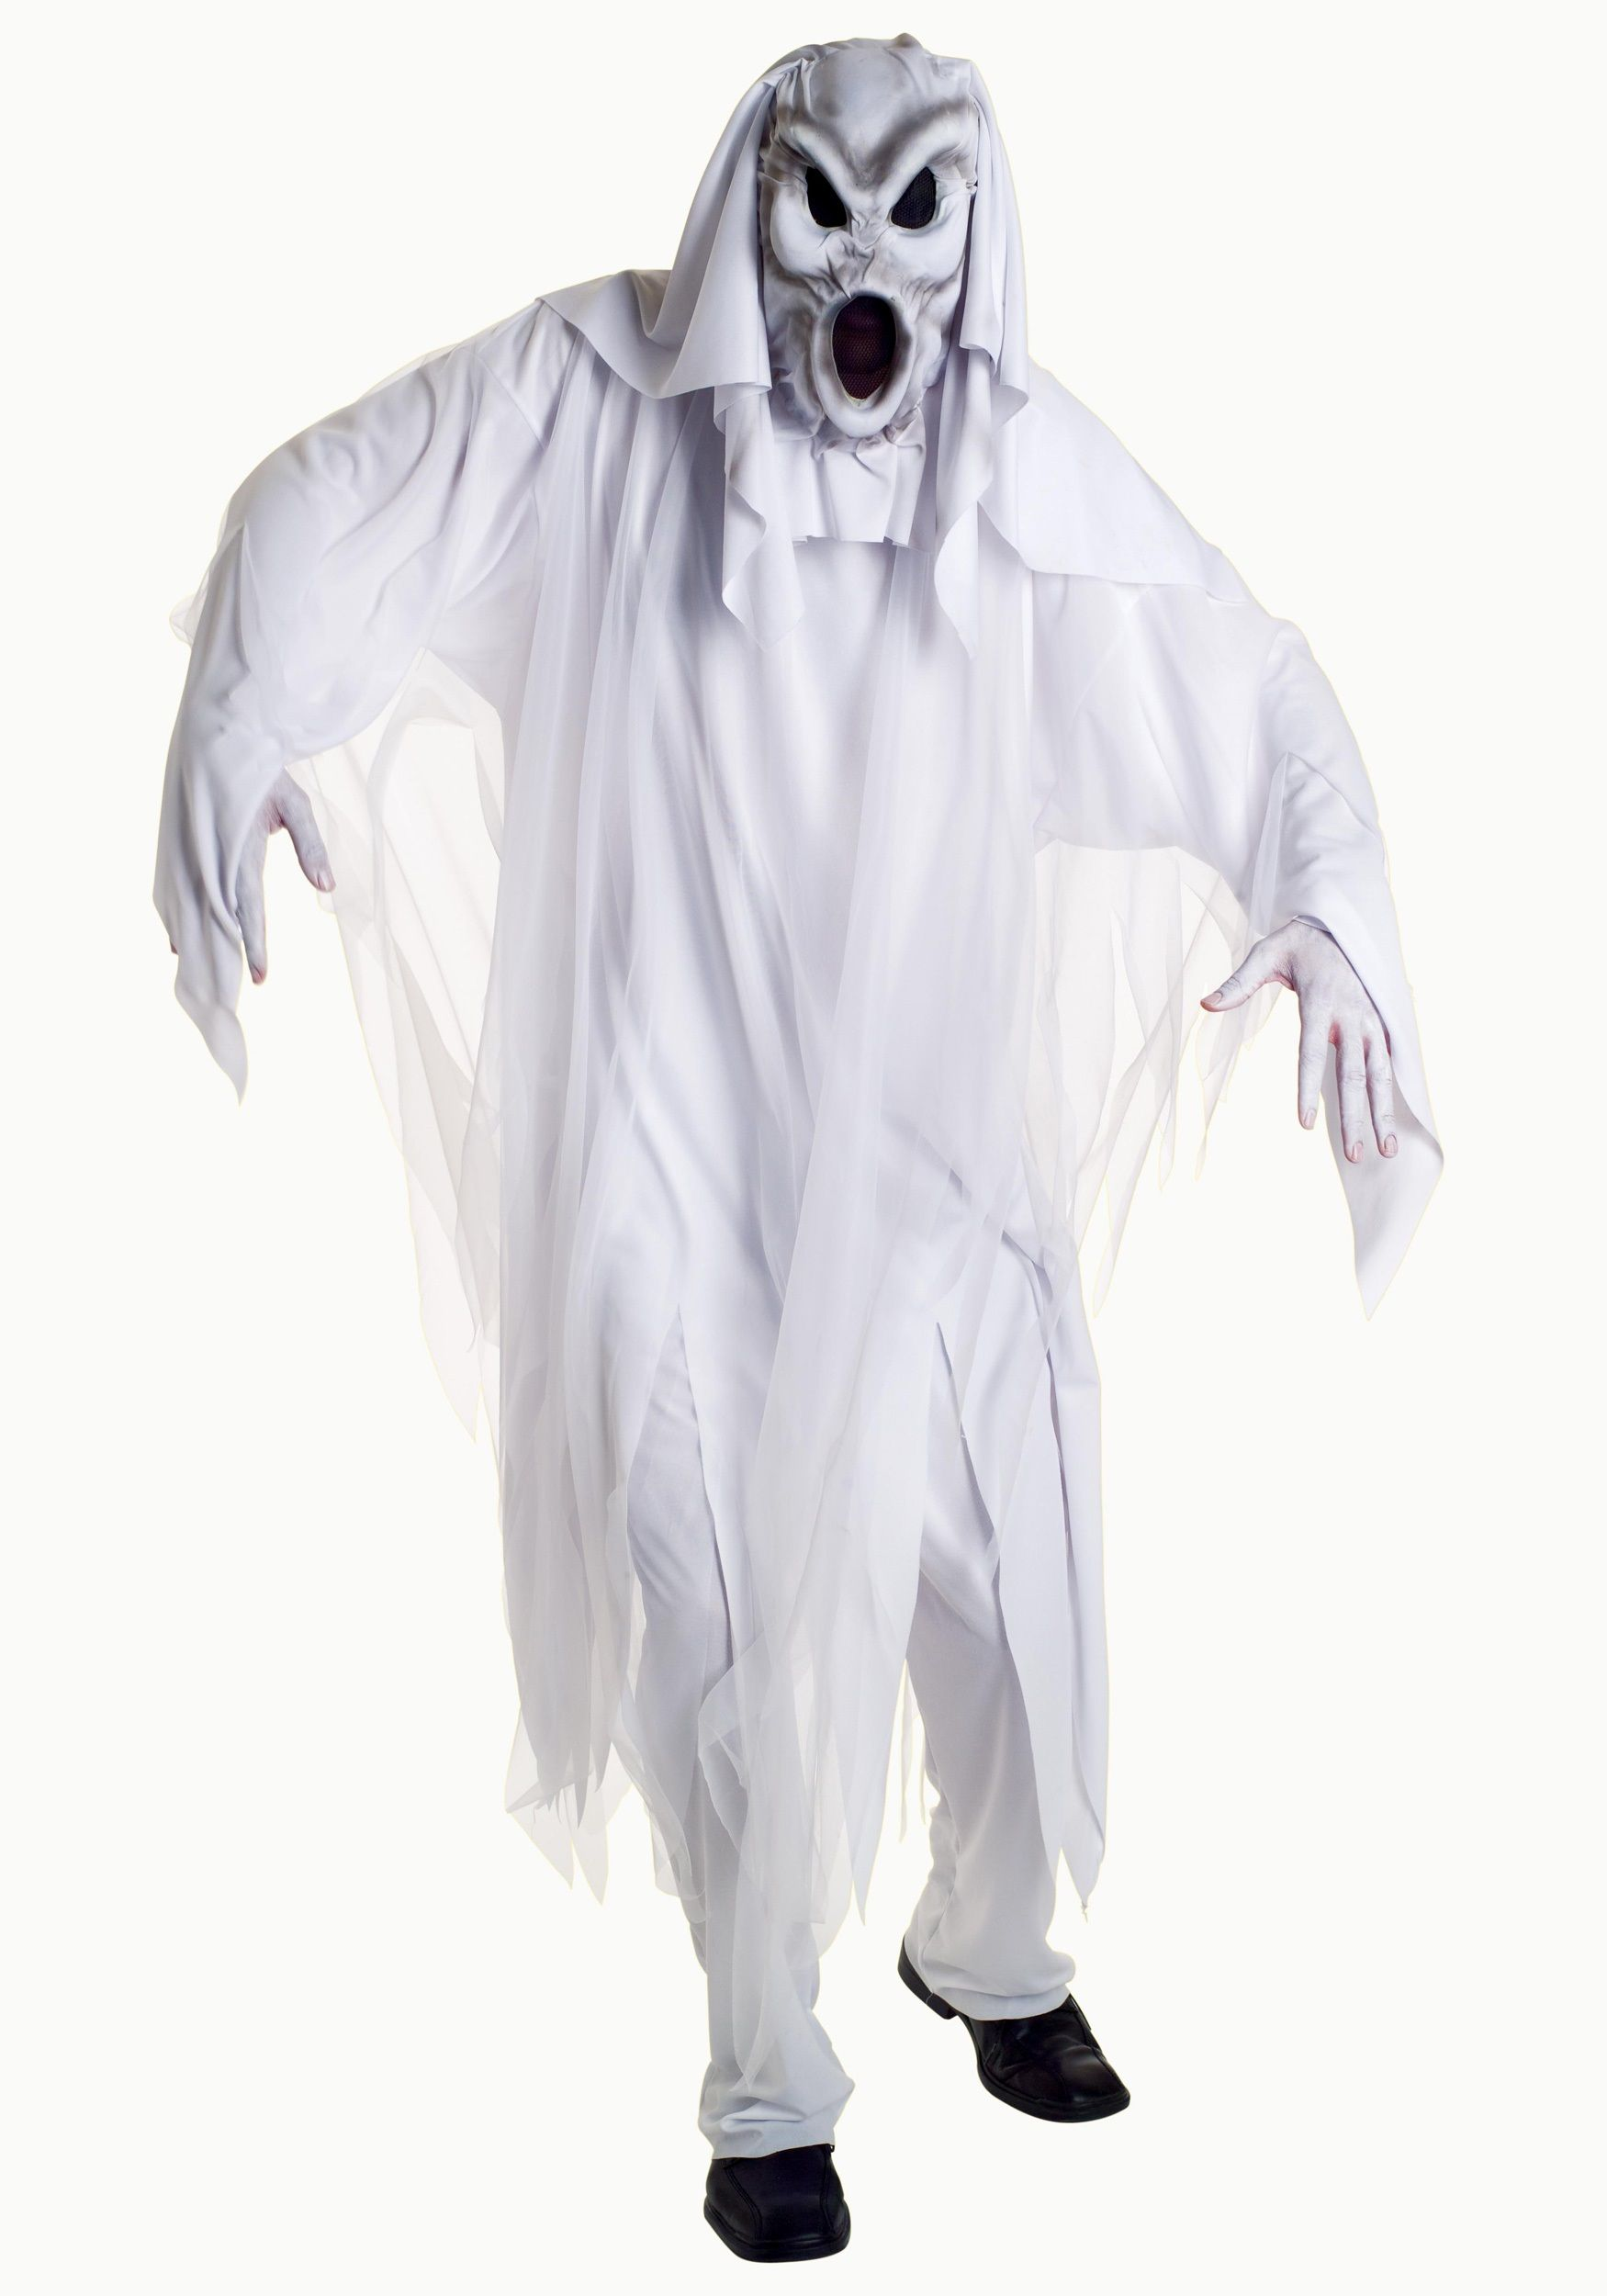 Ghost costume | halloween | Pinterest | Ghost costumes and Costumes